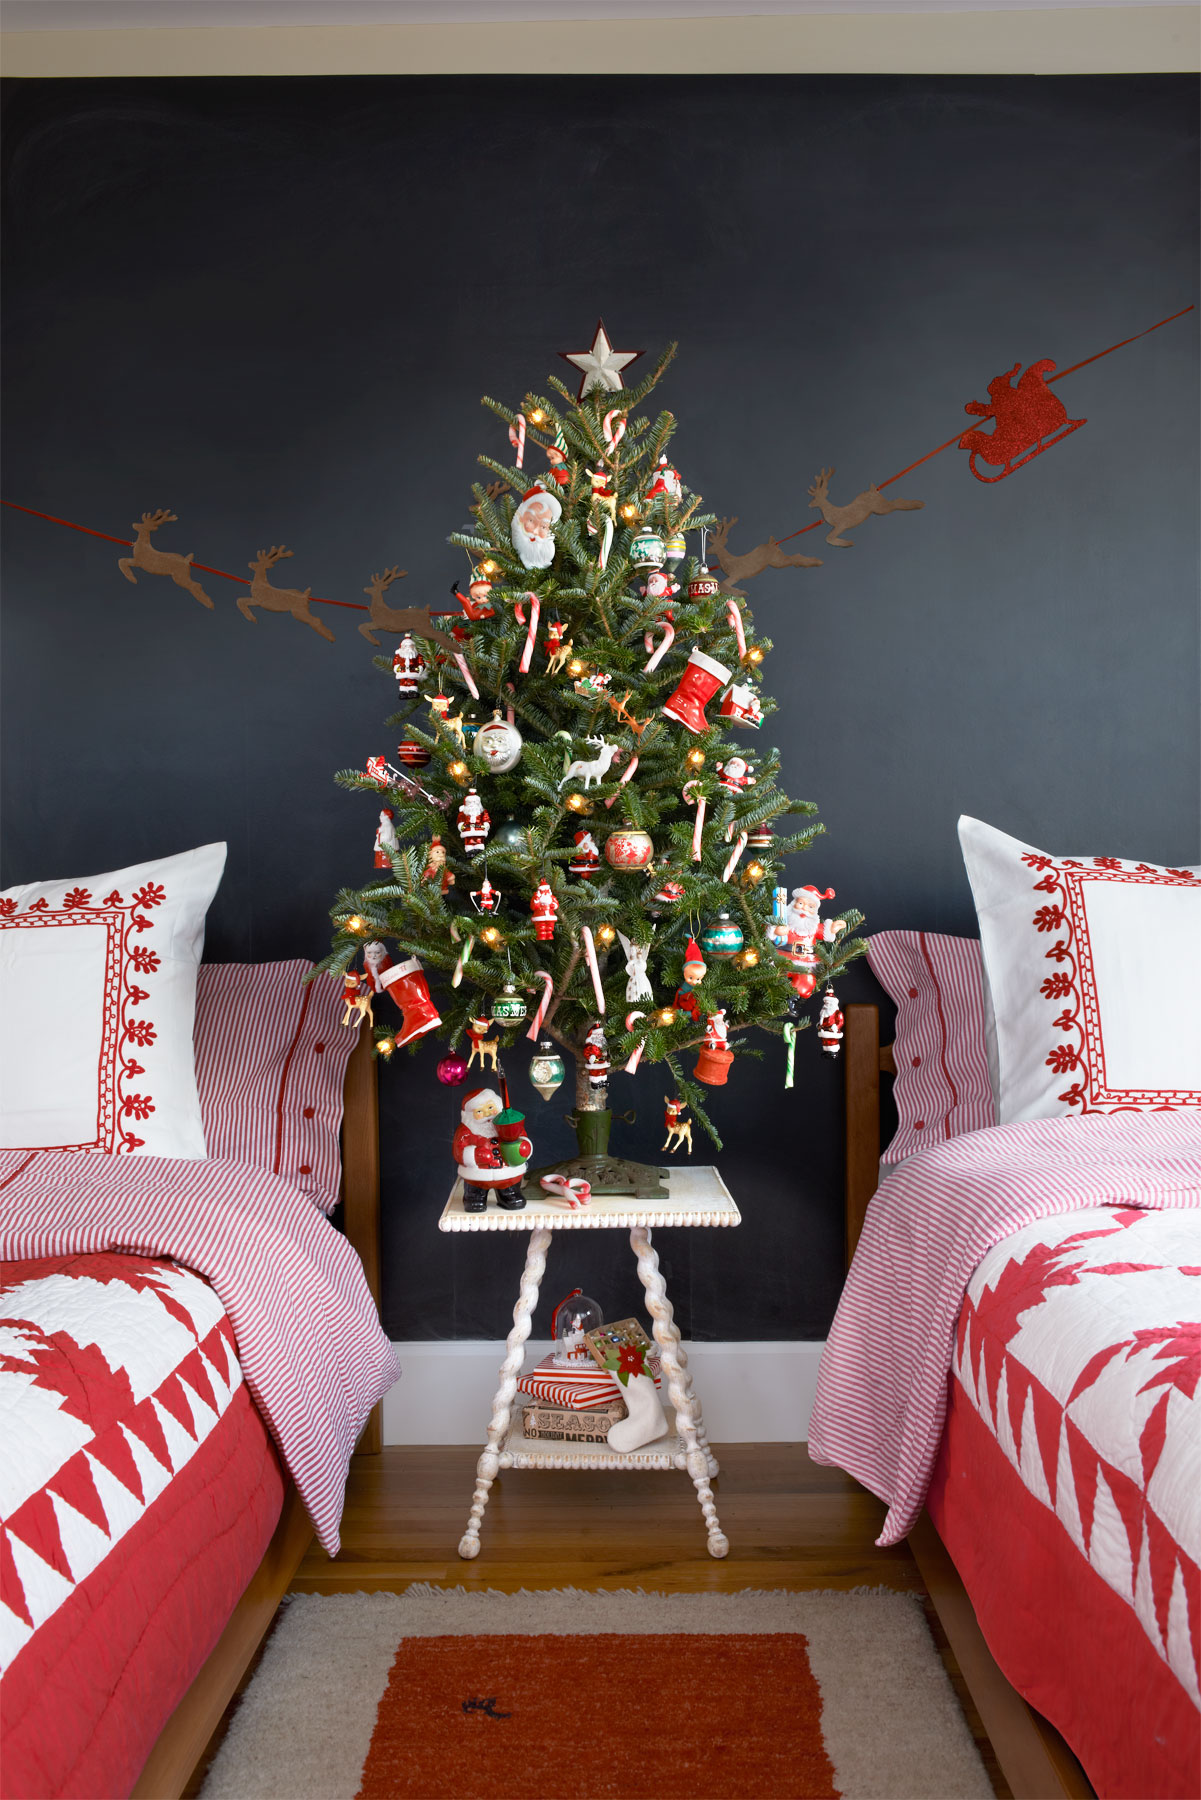 Tabletop christmas tree decorating ideas - Retro Bedside Tabletop